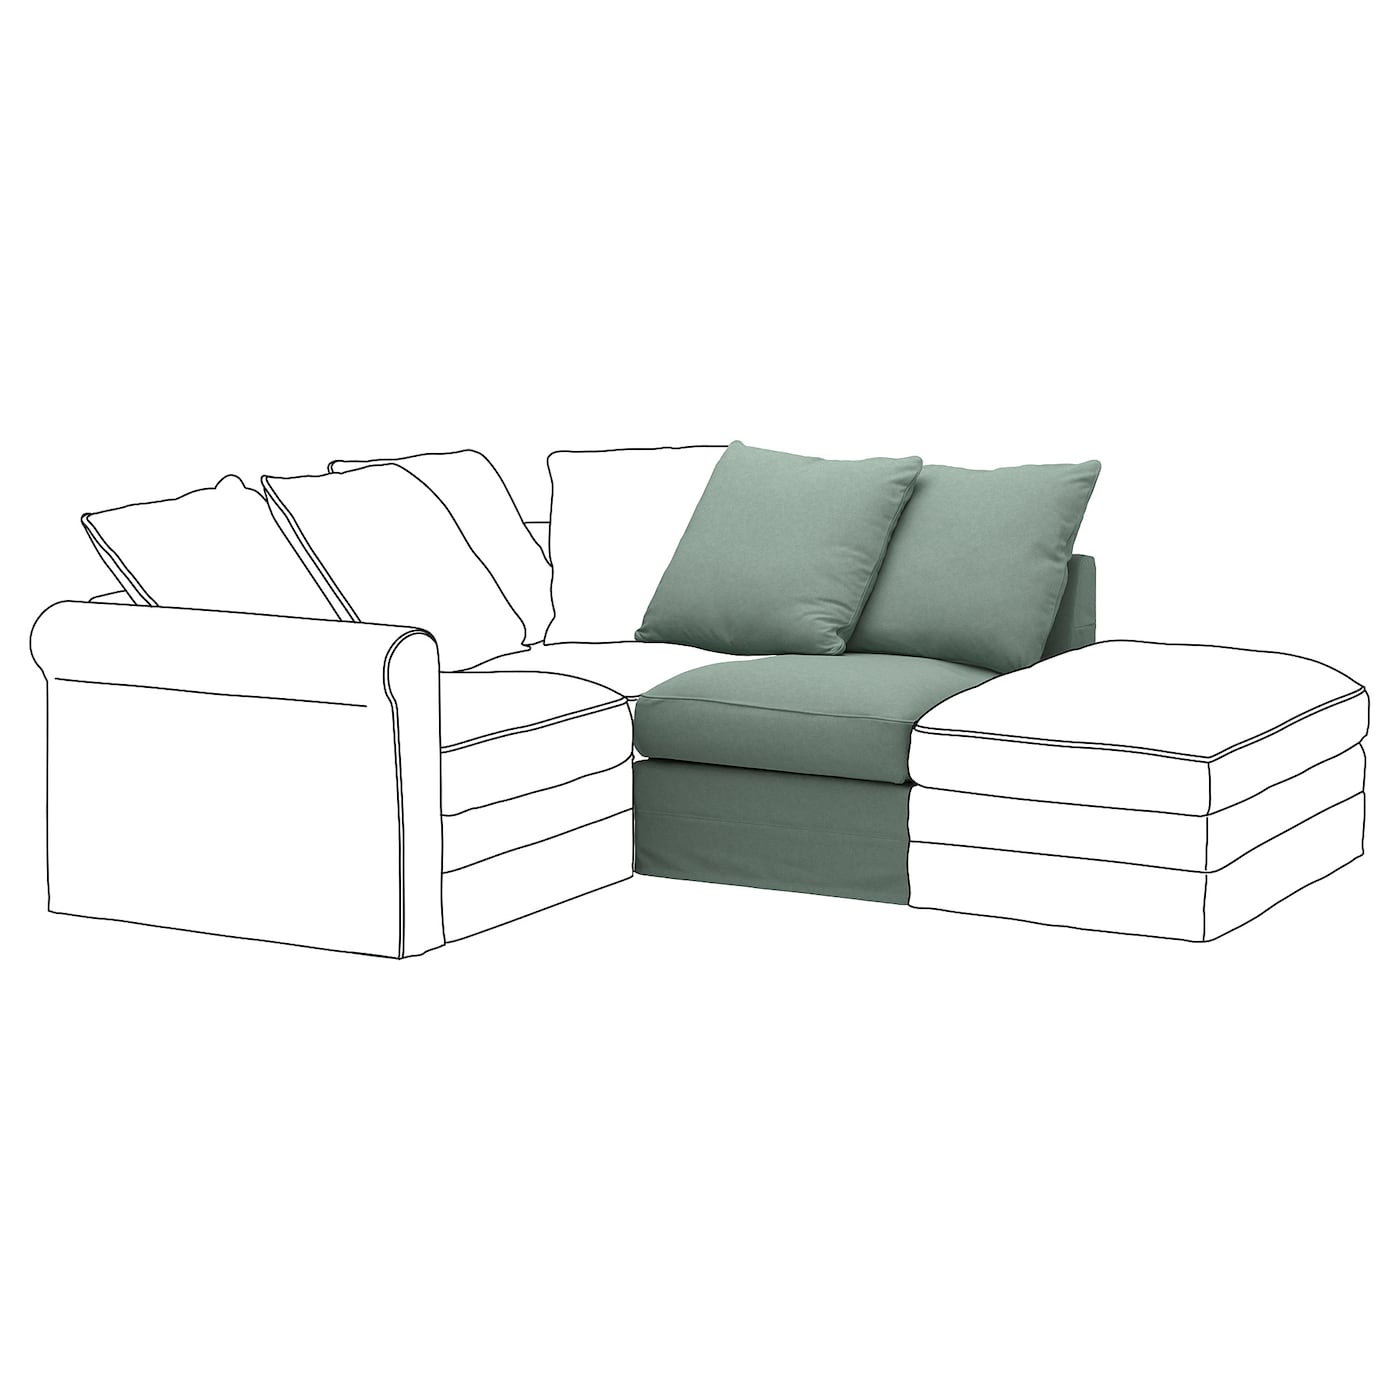 IKEA GRÖNLID 1-seat section 10 year guarantee. Read about the terms in the guarantee brochure.